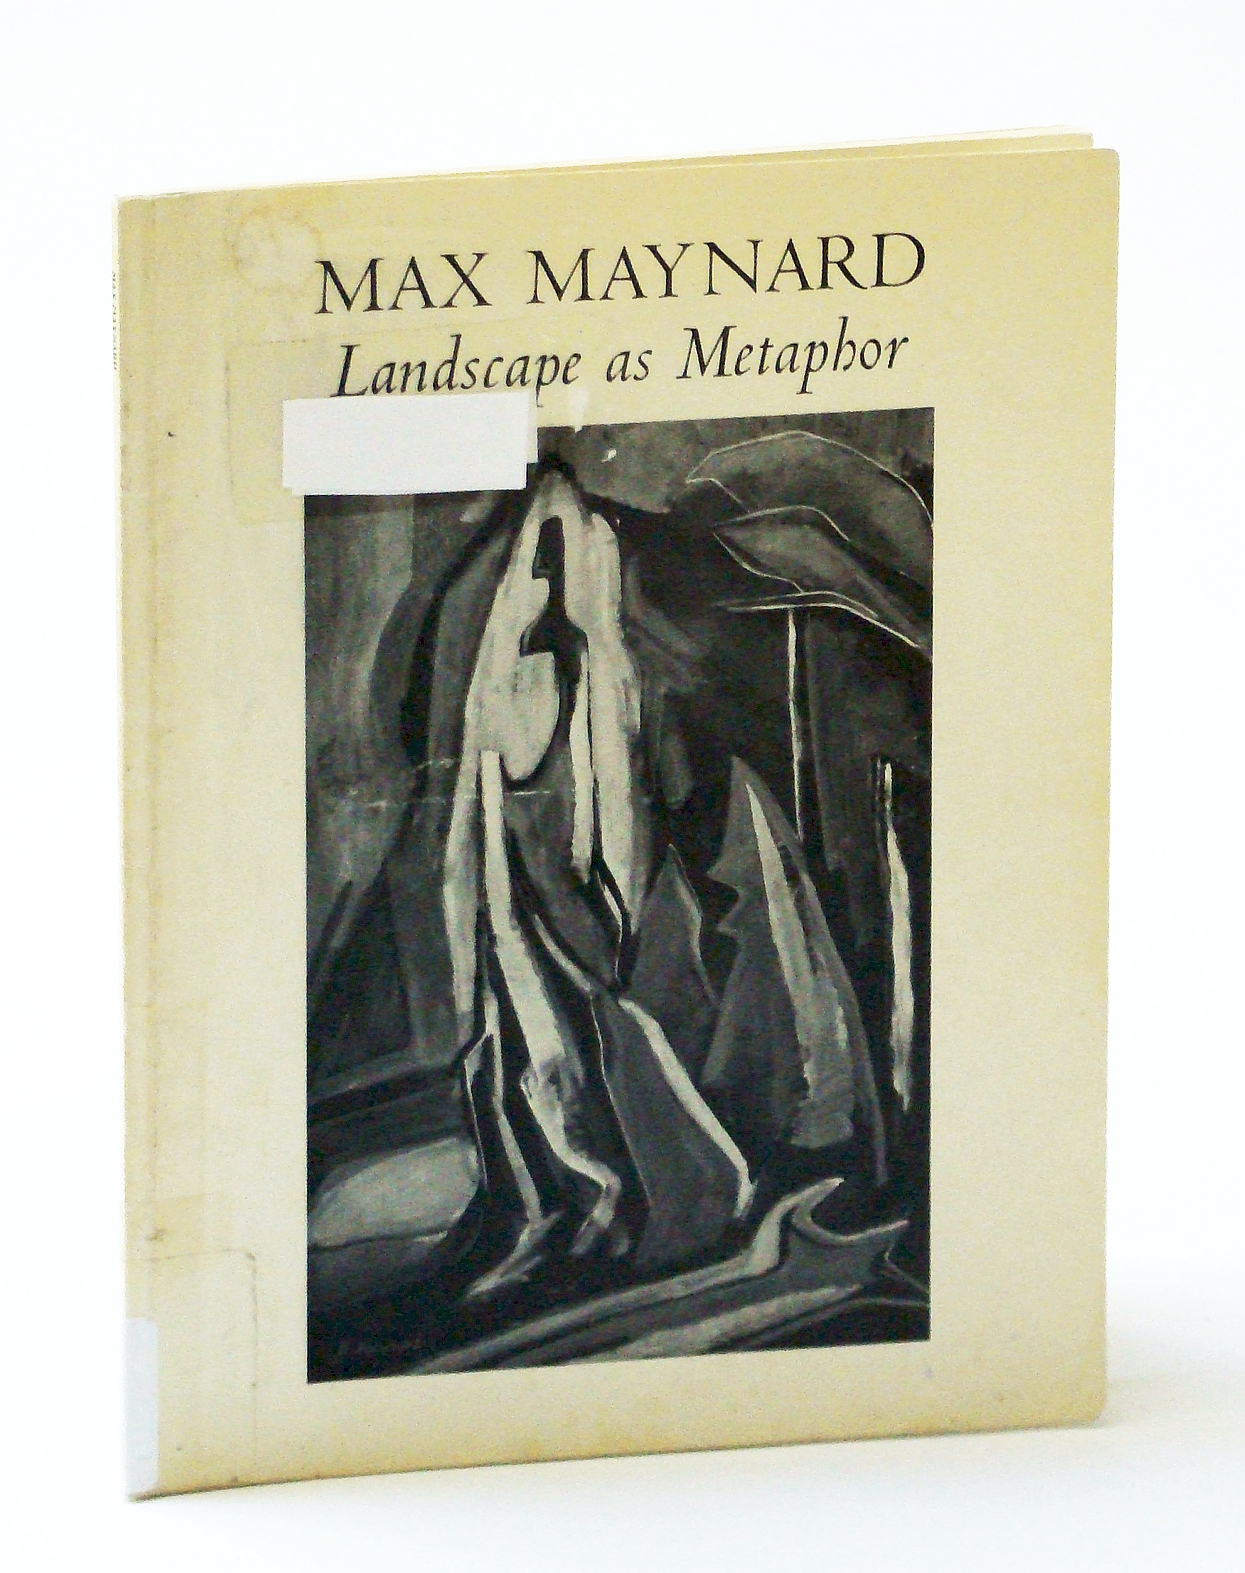 Image for Max Maynard: Landscape as Metaphor - Catalogue for an Exhibition, May 5 - July 3, 1983